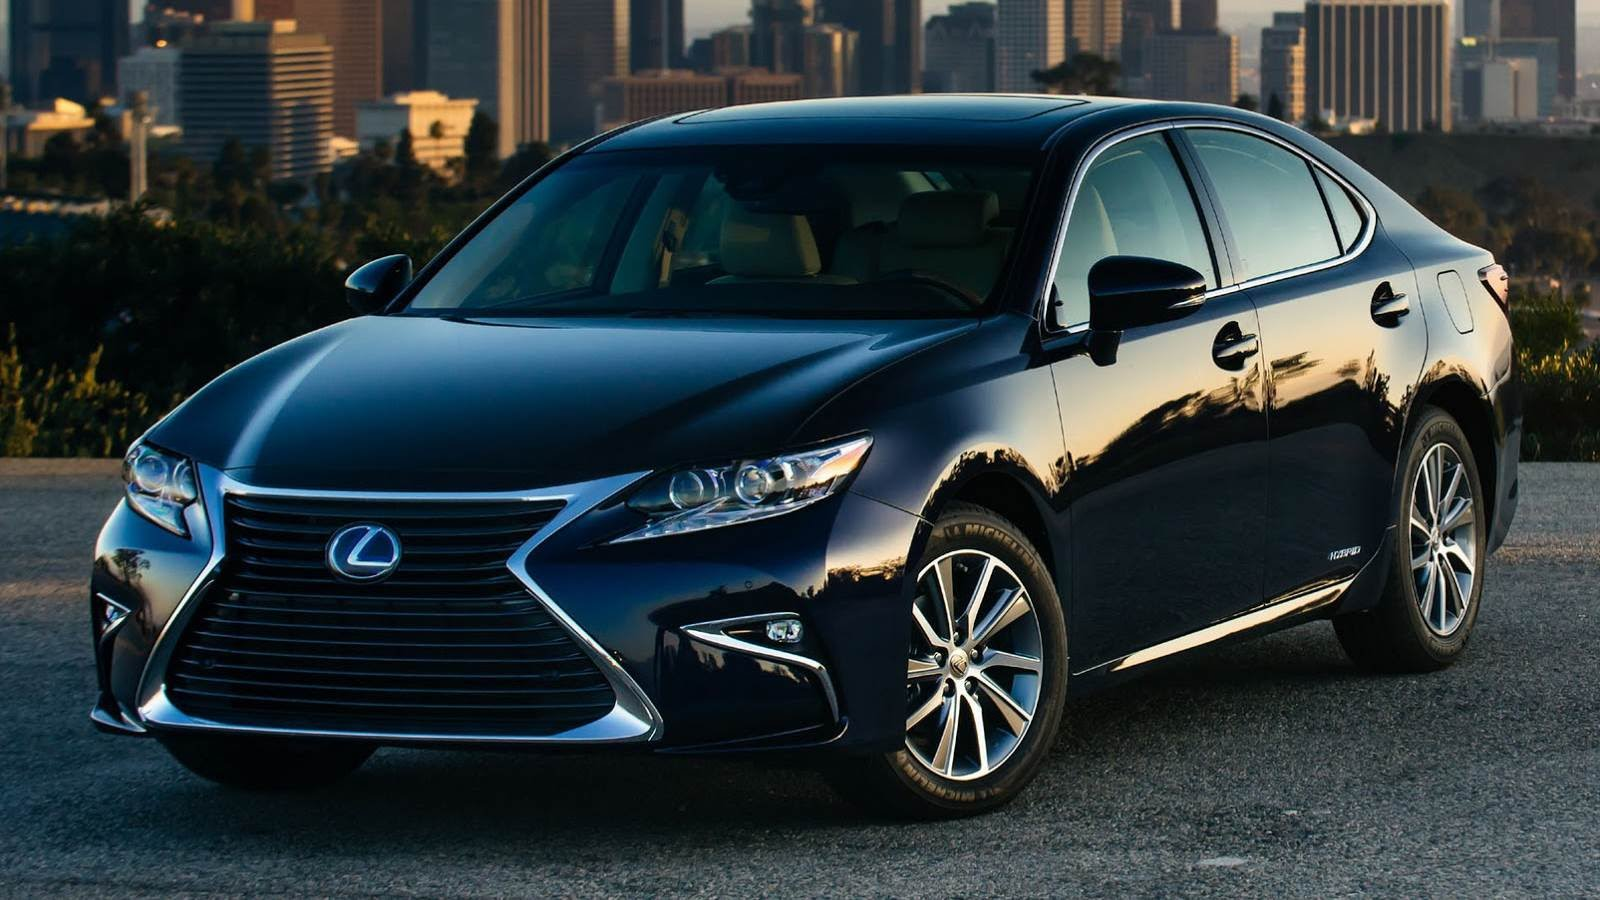 http://bestcarmag.com/sites/default/files/2016-lexus-es-350-1880457-7614440.jpg